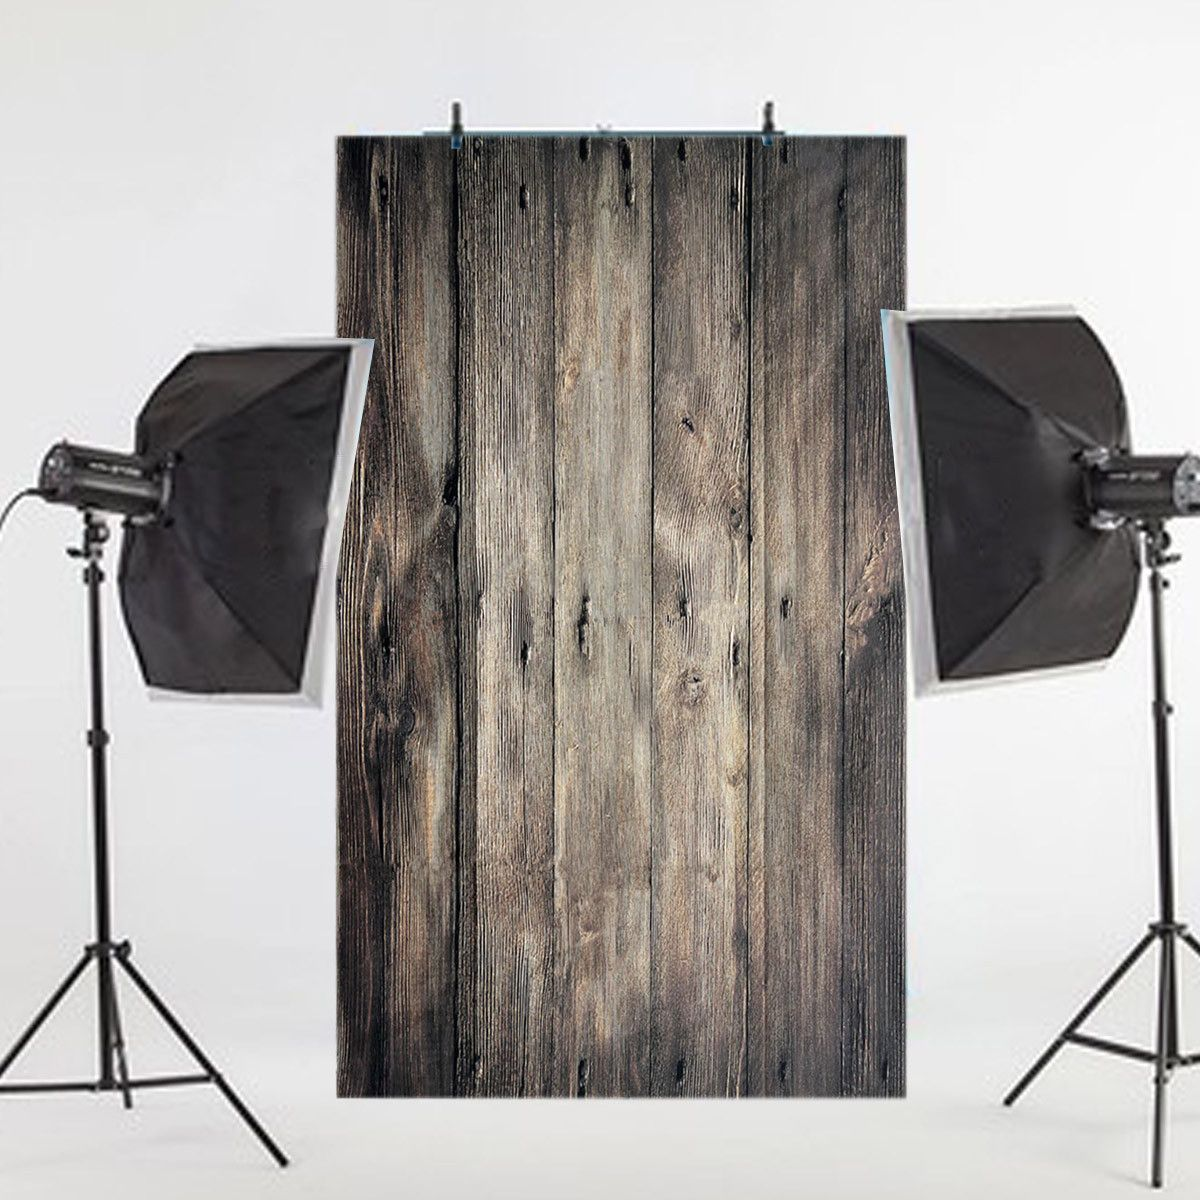 New 3x5FT Vintage Photography Backdrops Wood Vintage Photography Backdrop Backgrounds Studio Wood Background Fotografia n20 dc12v 300rpm mini metal gear motor electric gear box motor